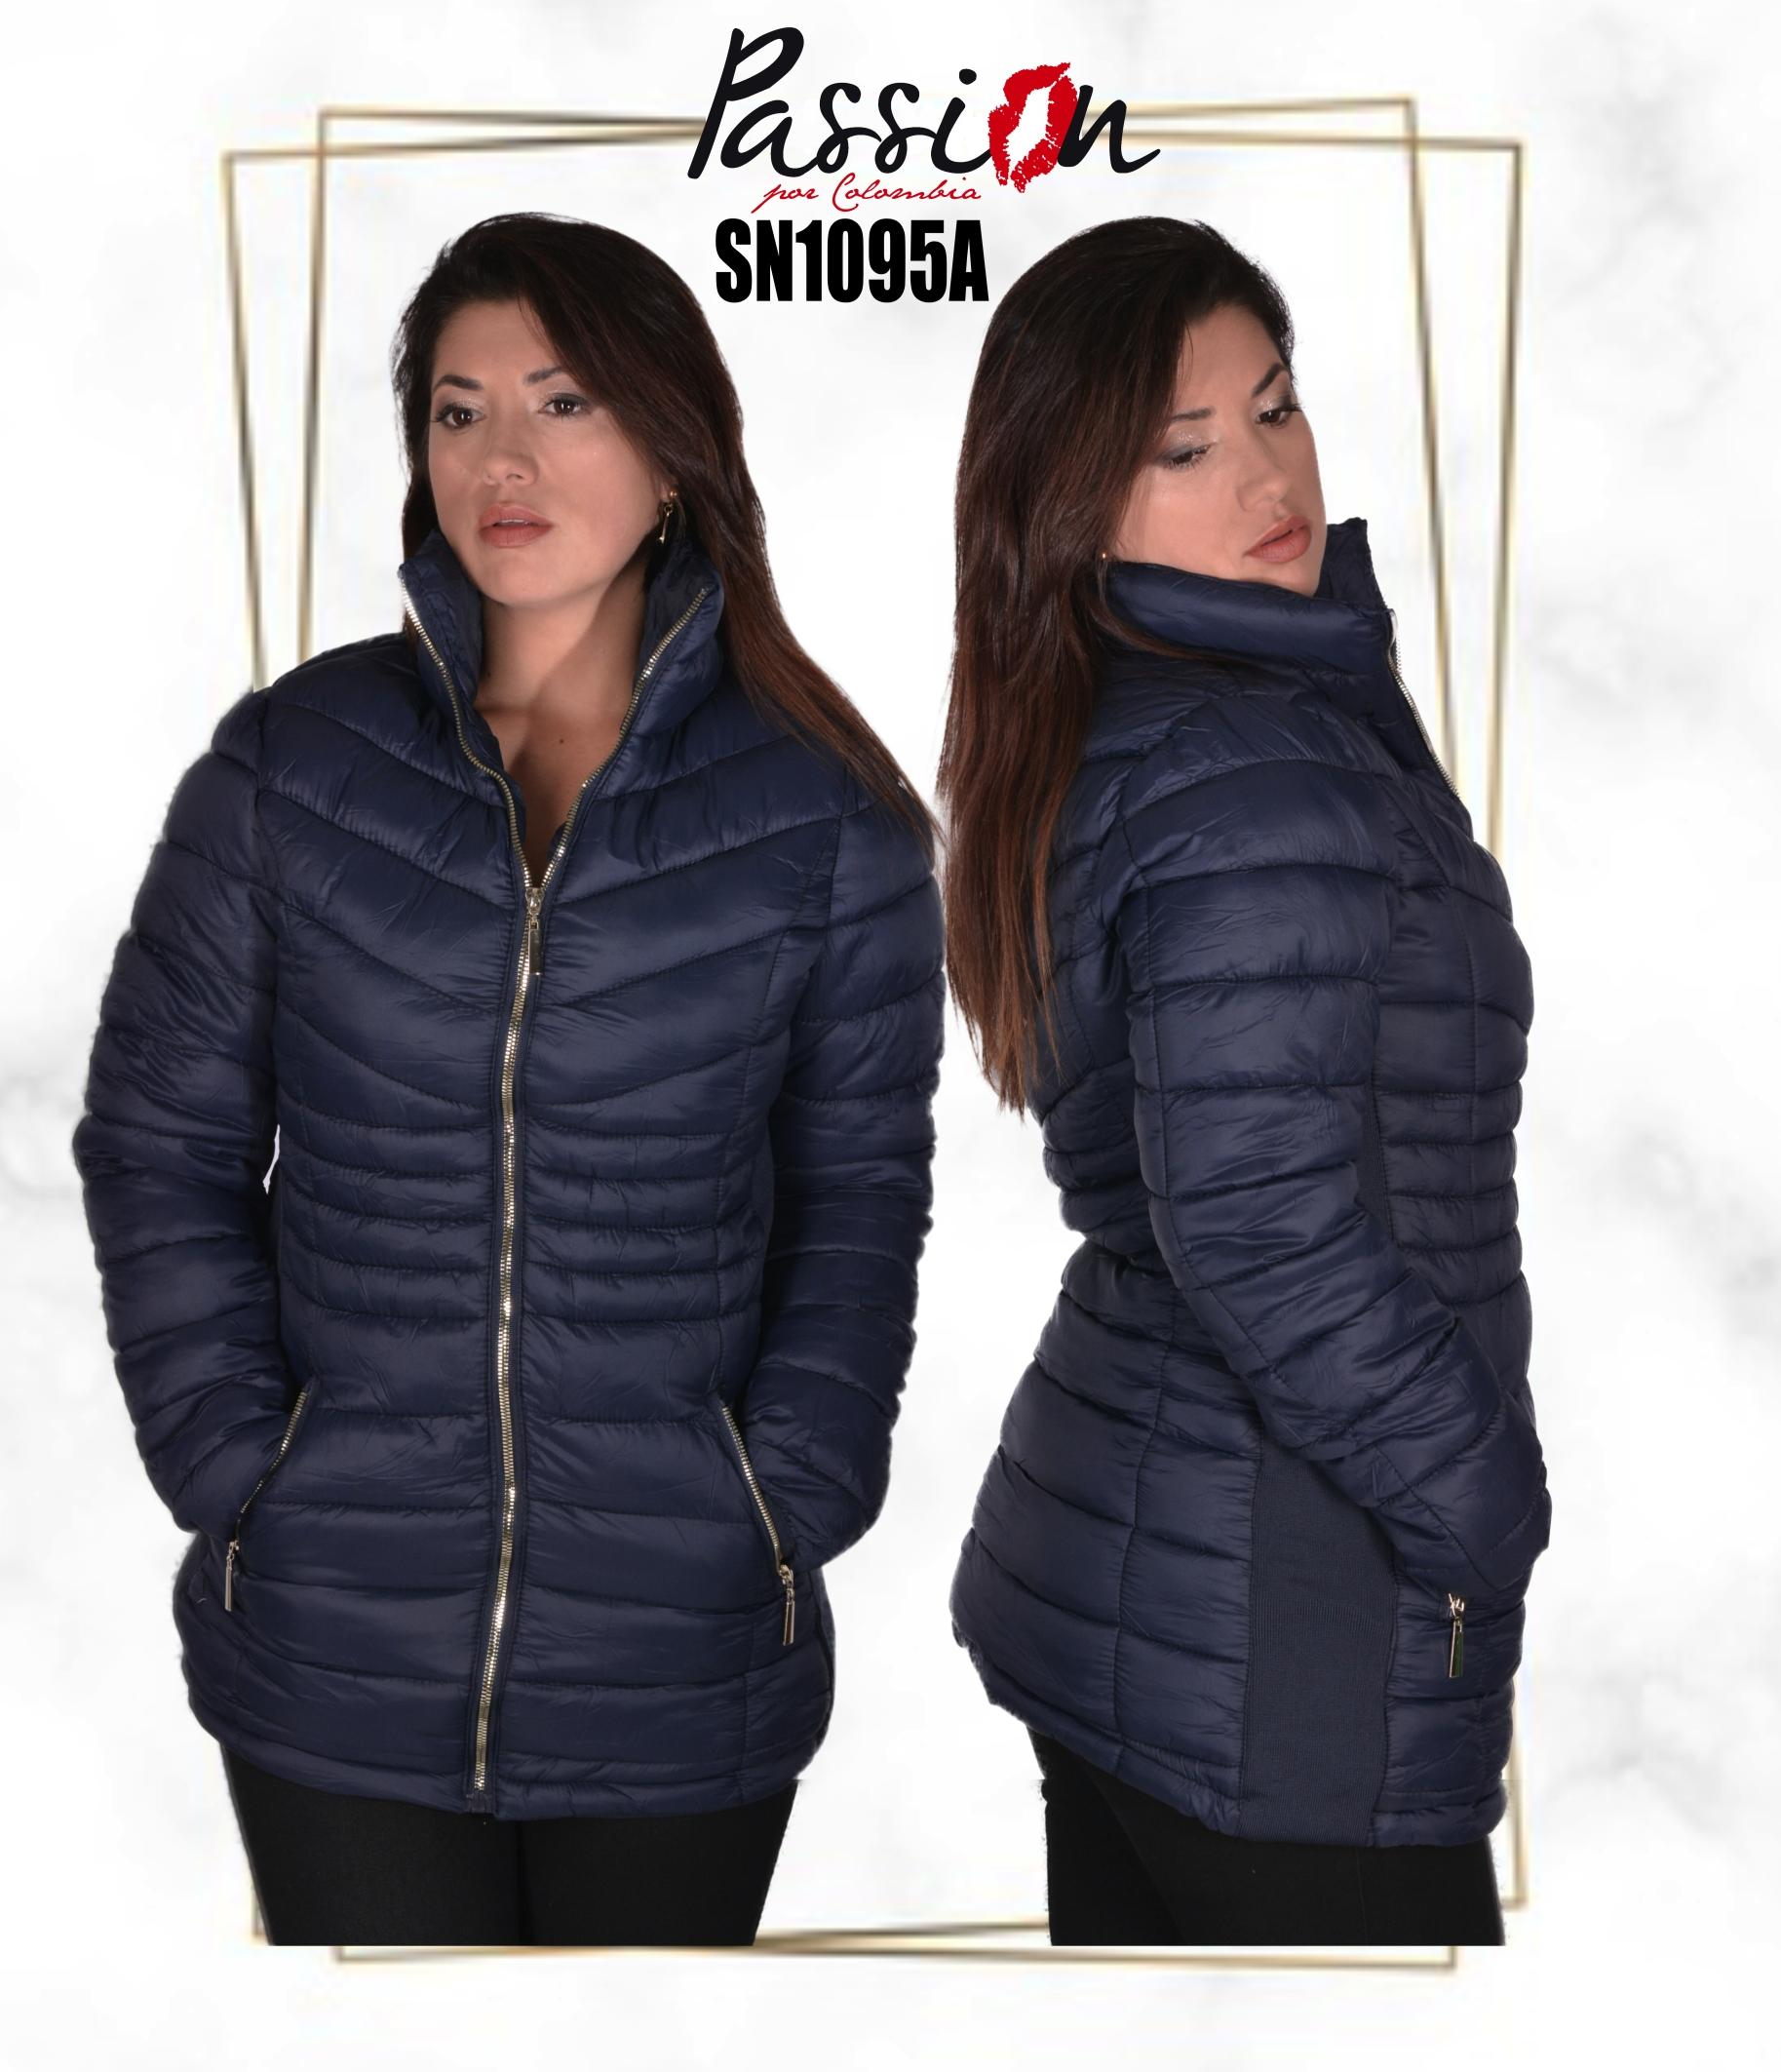 American Turtleneck jacket with front pockets and fashionable style Color Blue